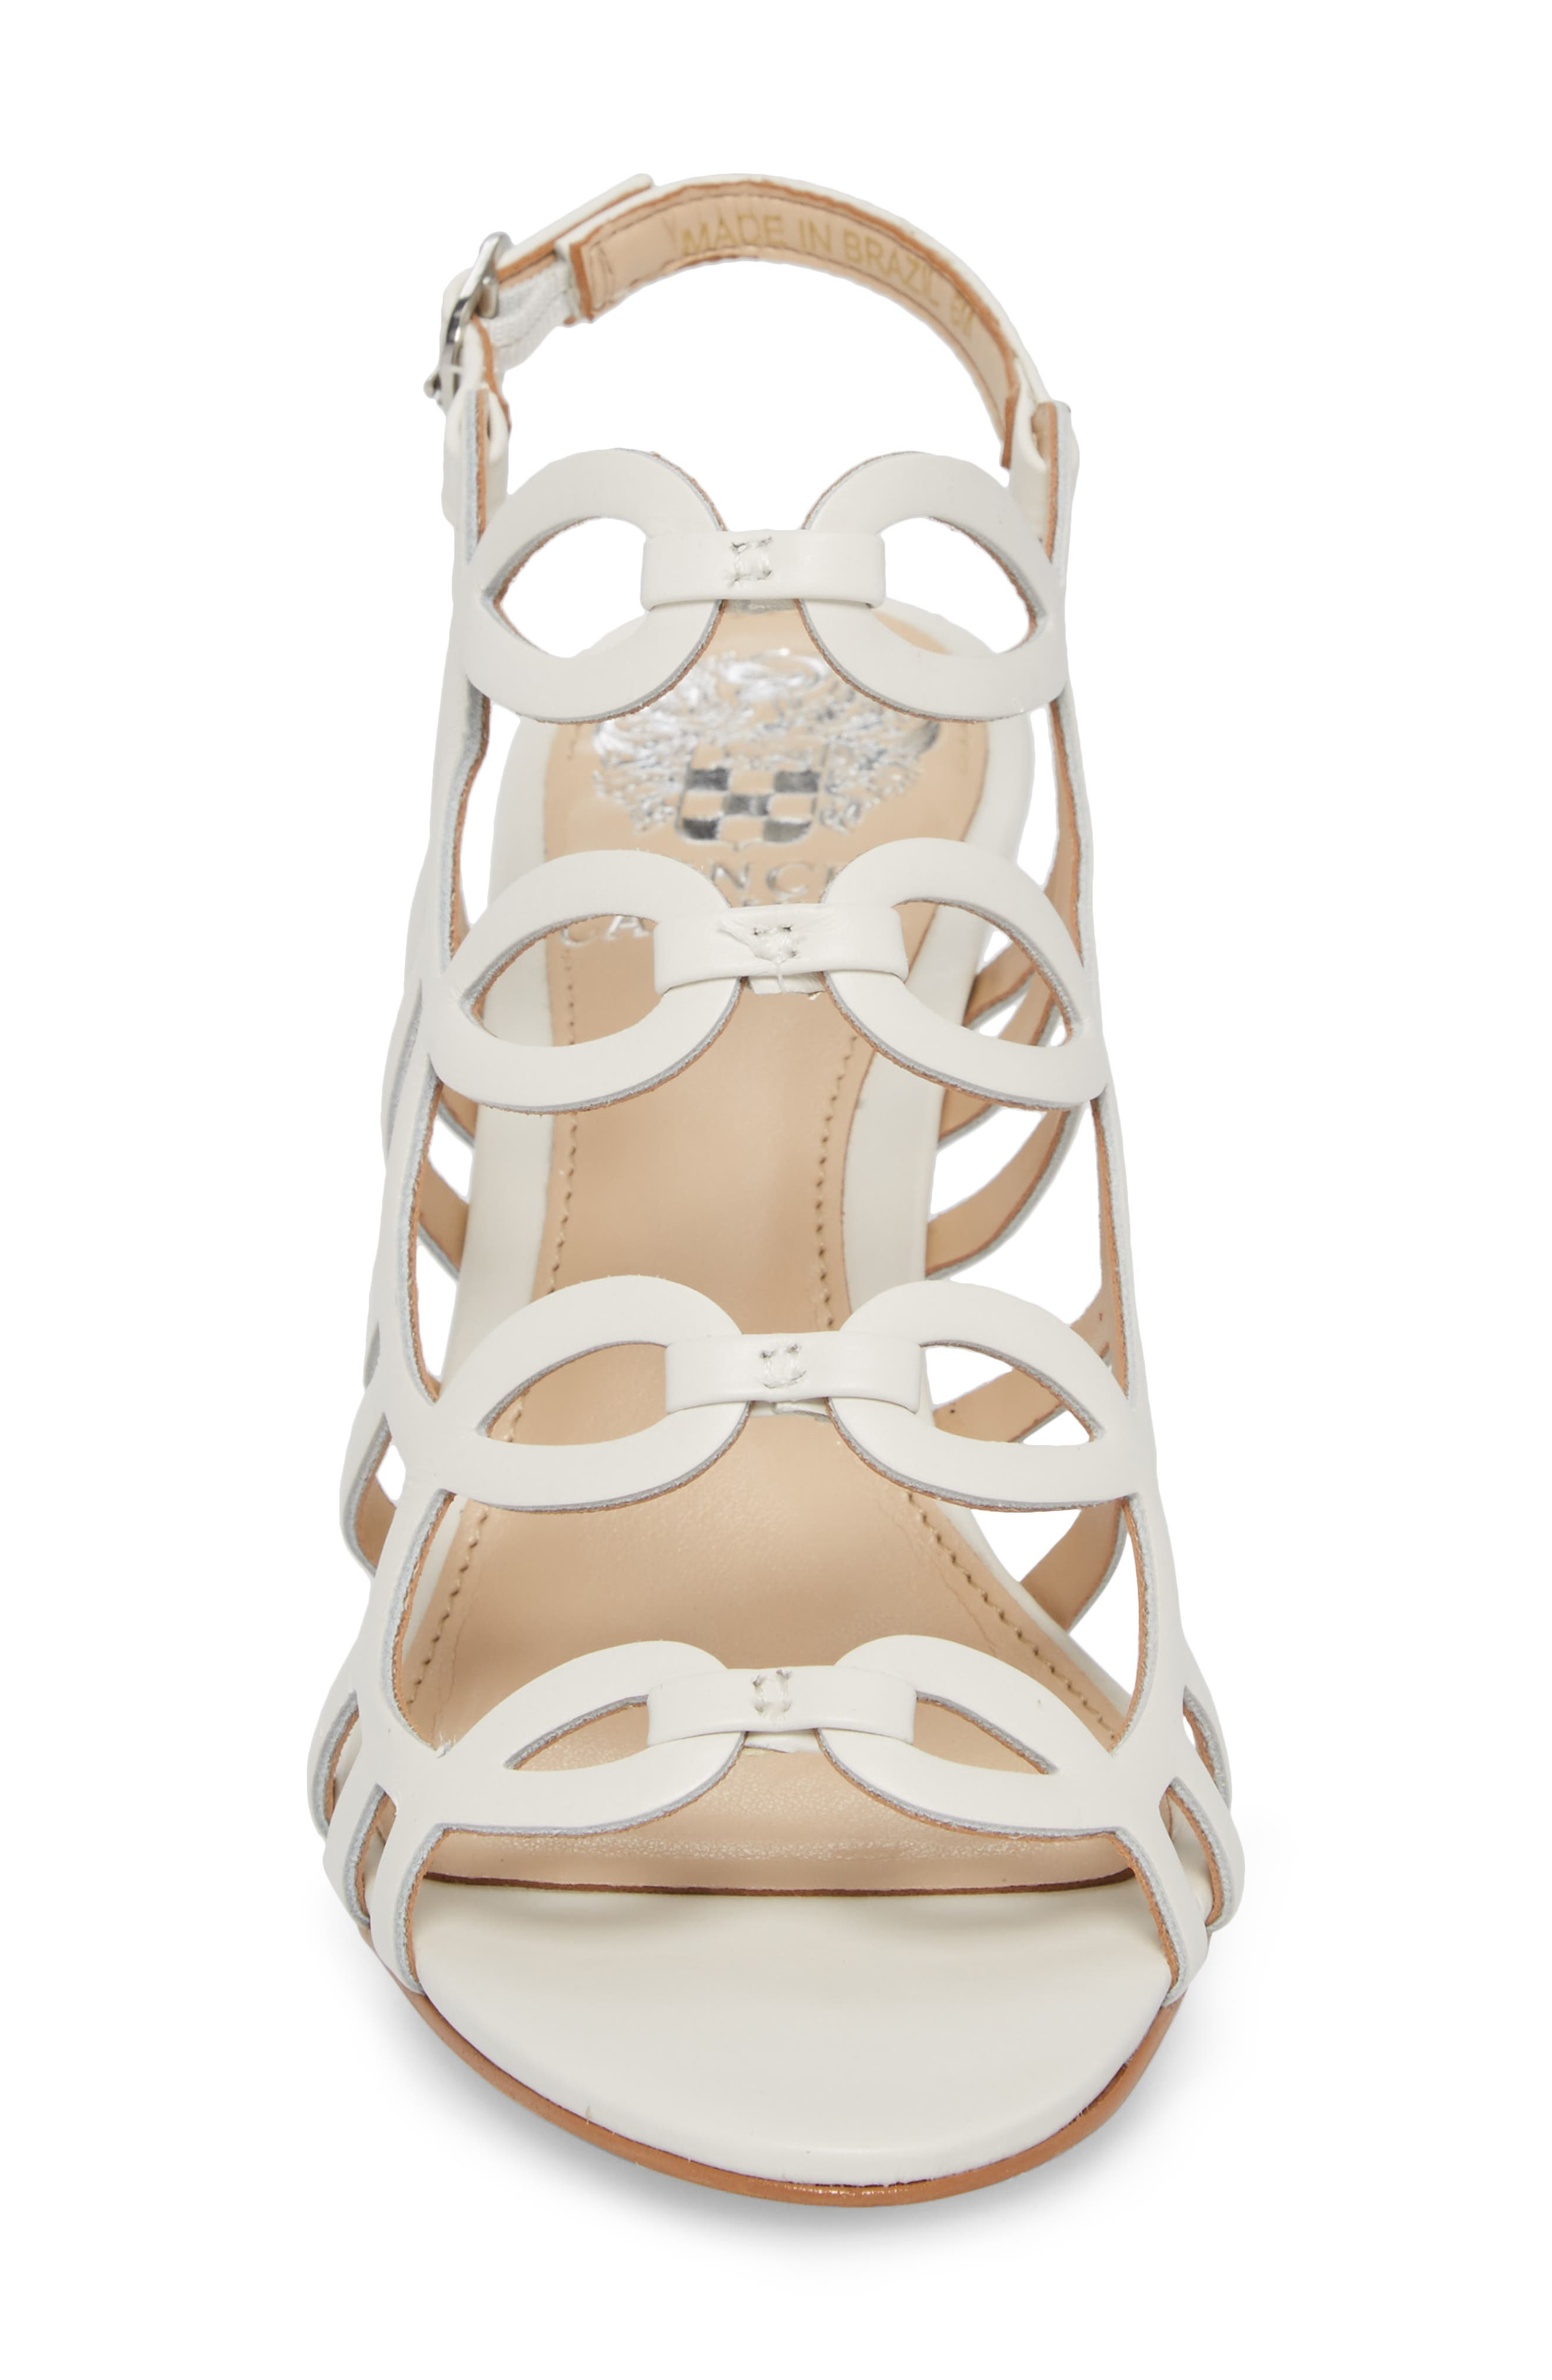 Petina Sandal,                             Alternate thumbnail 4, color,                             WHITE LEATHER